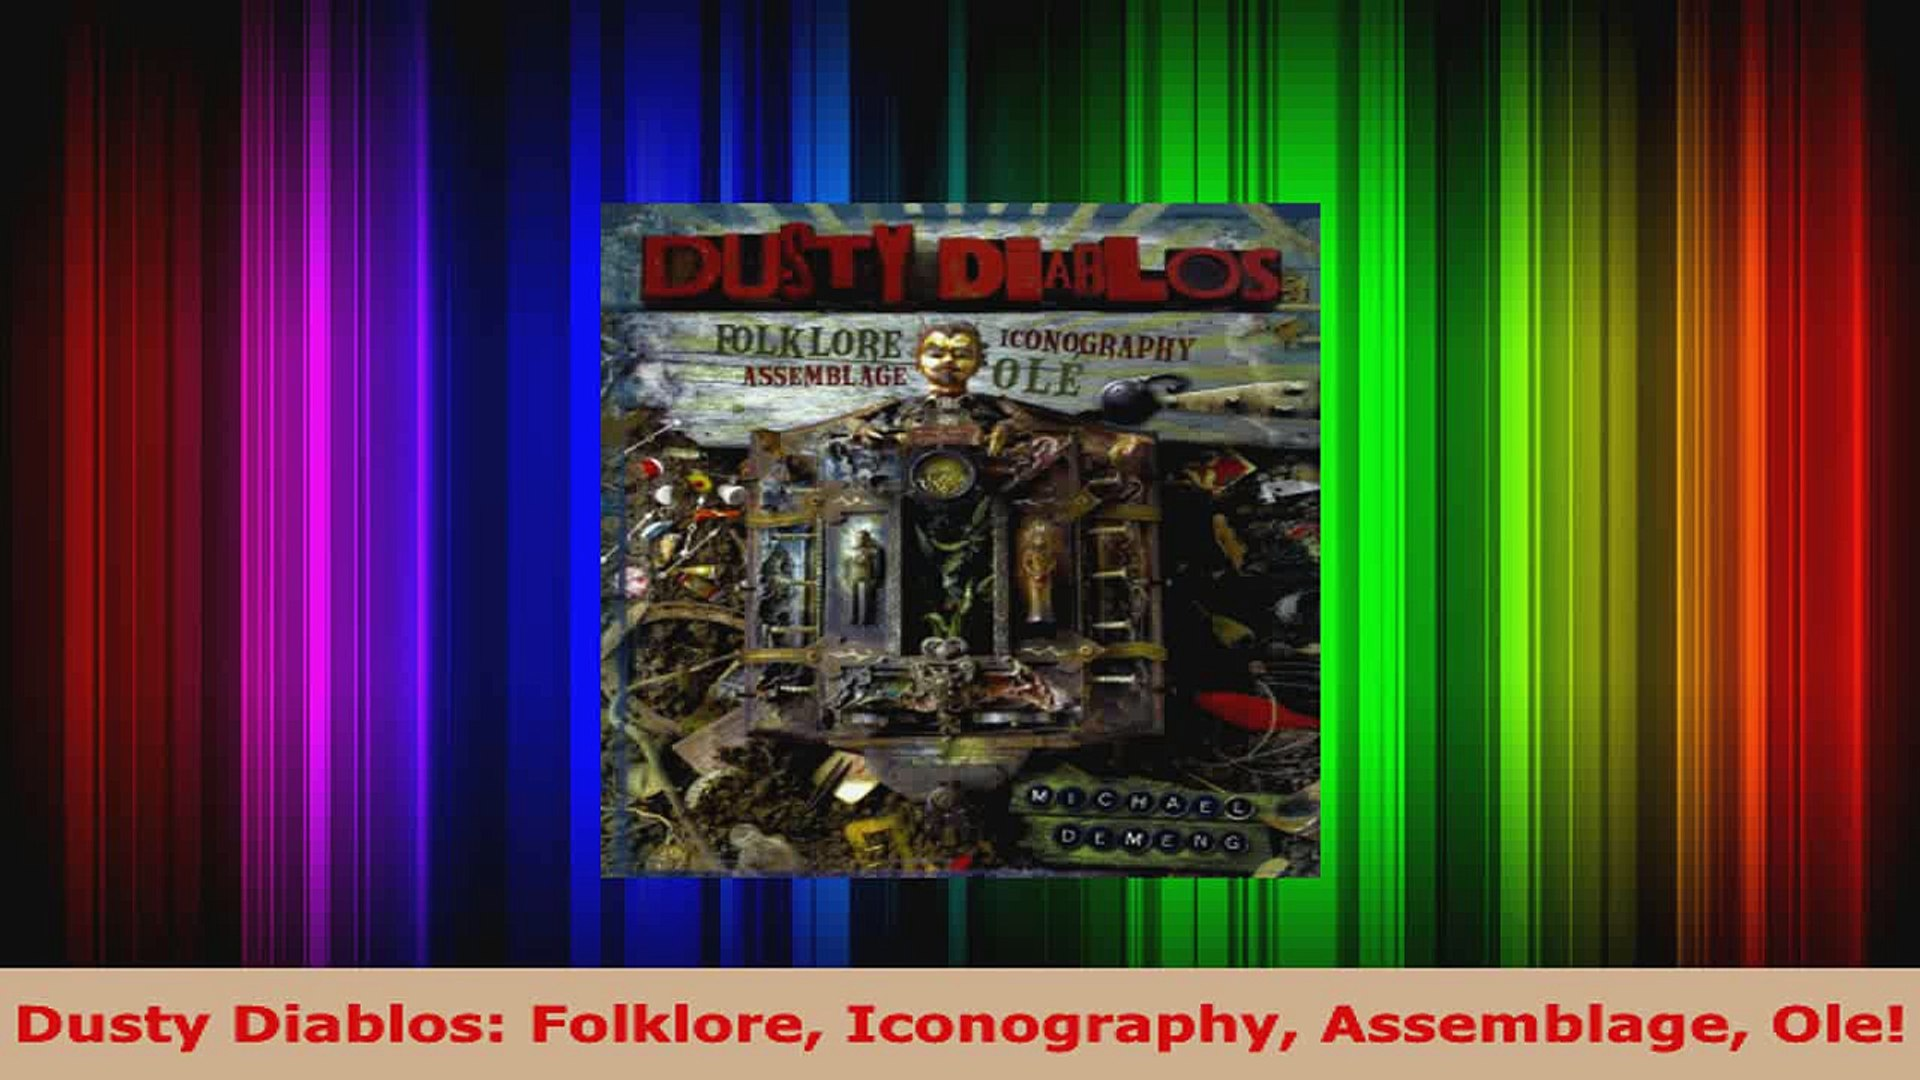 Ole! Dusty Diablos: Folklore Iconography Assemblage